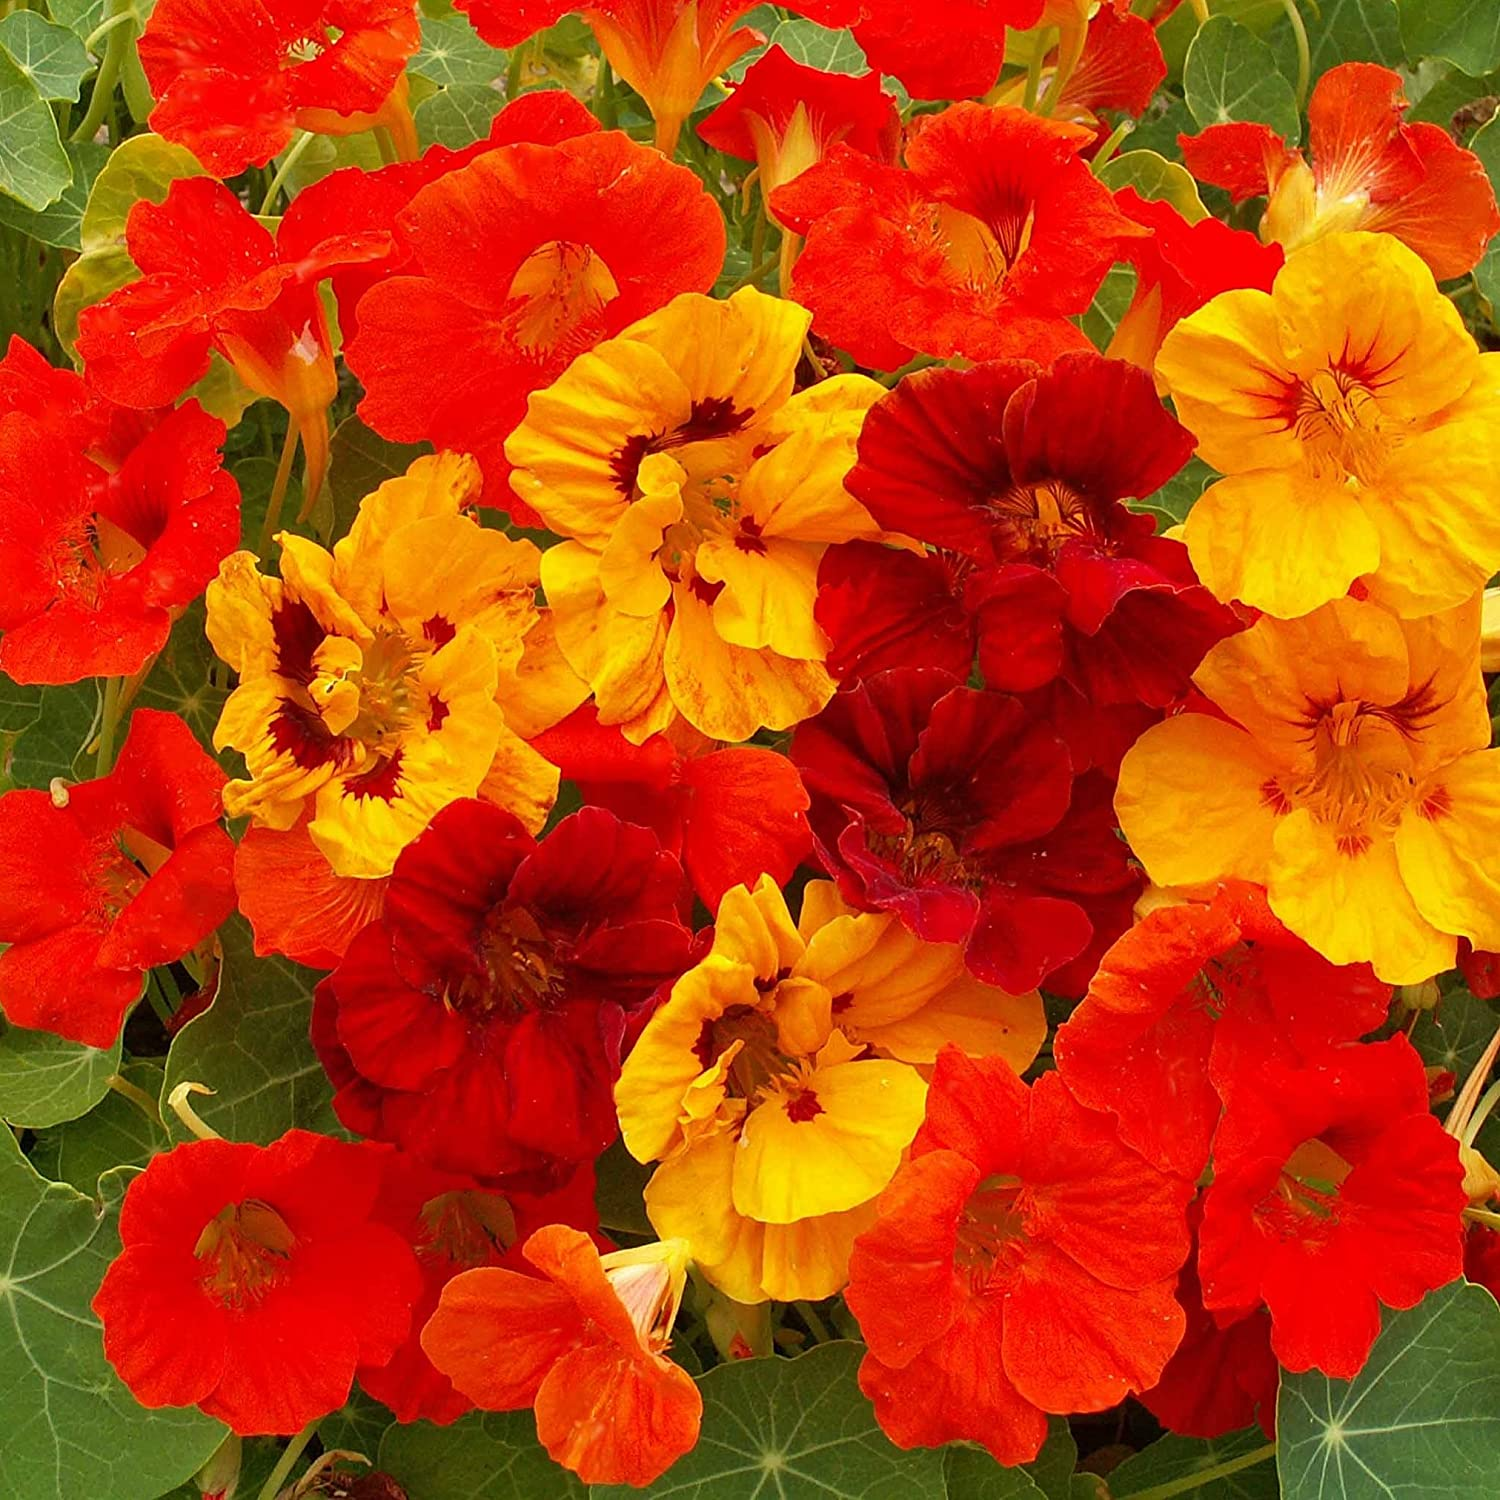 Beautiful Chinese Houses Seeds 200 SEEDS -BUY 4 ITEMS FREE SHIPPING